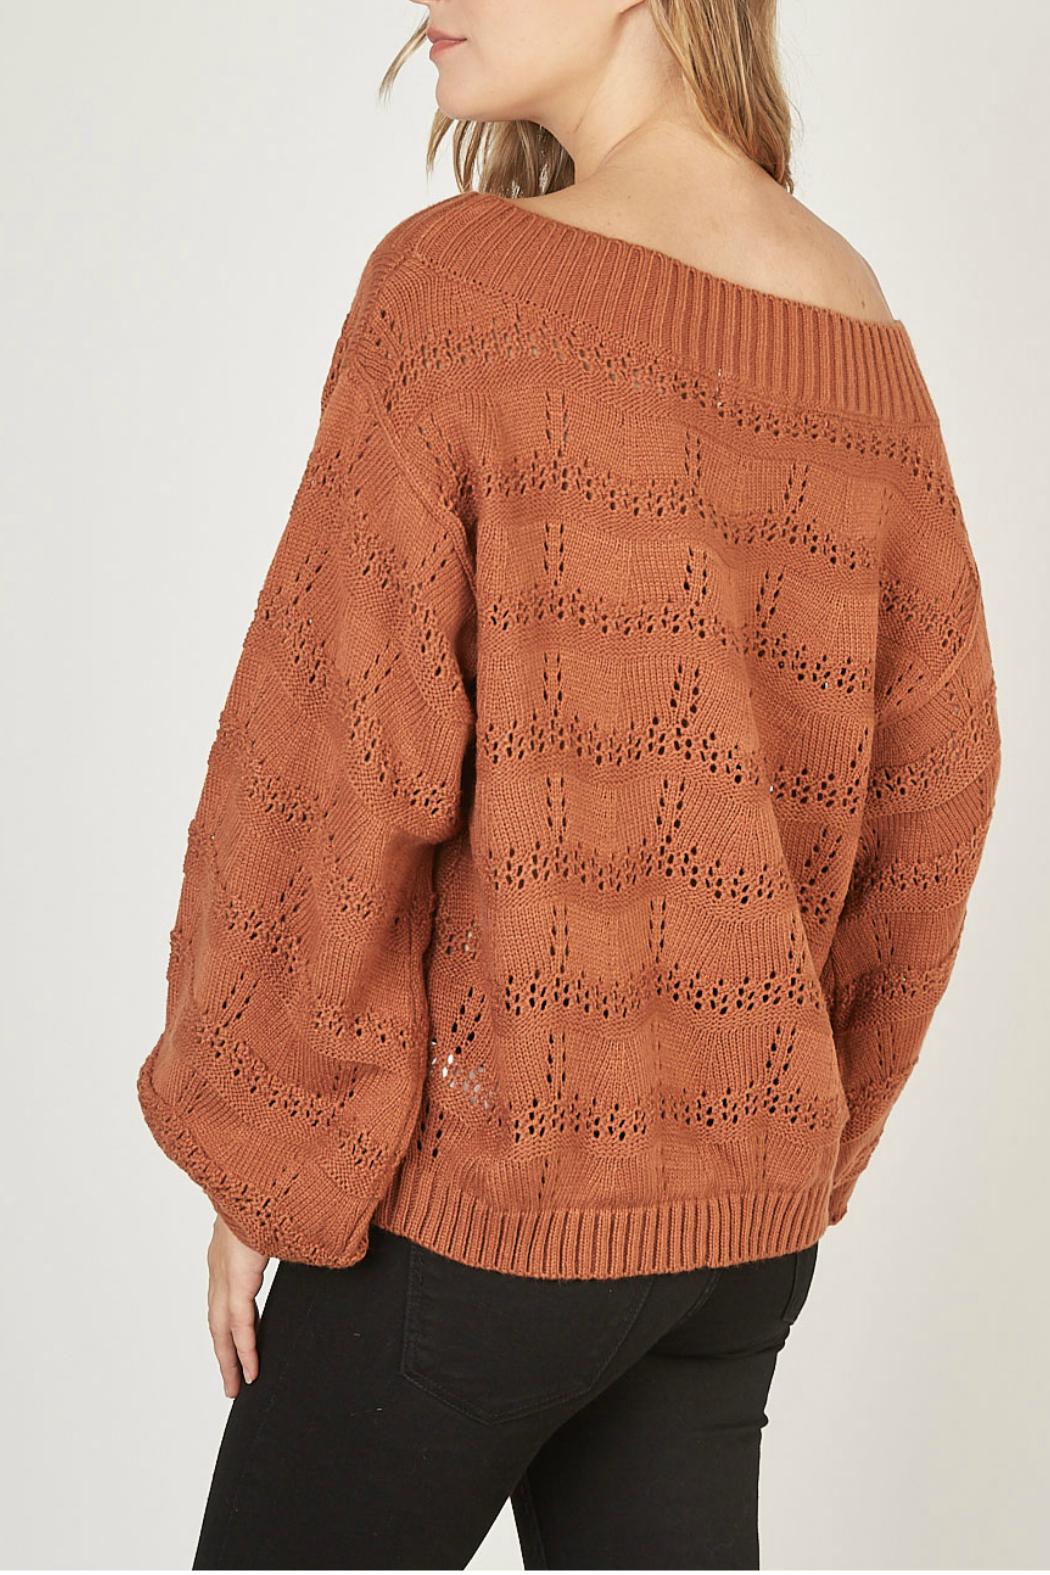 Mustardseed Marled open-knit sweater - Side Cropped Image